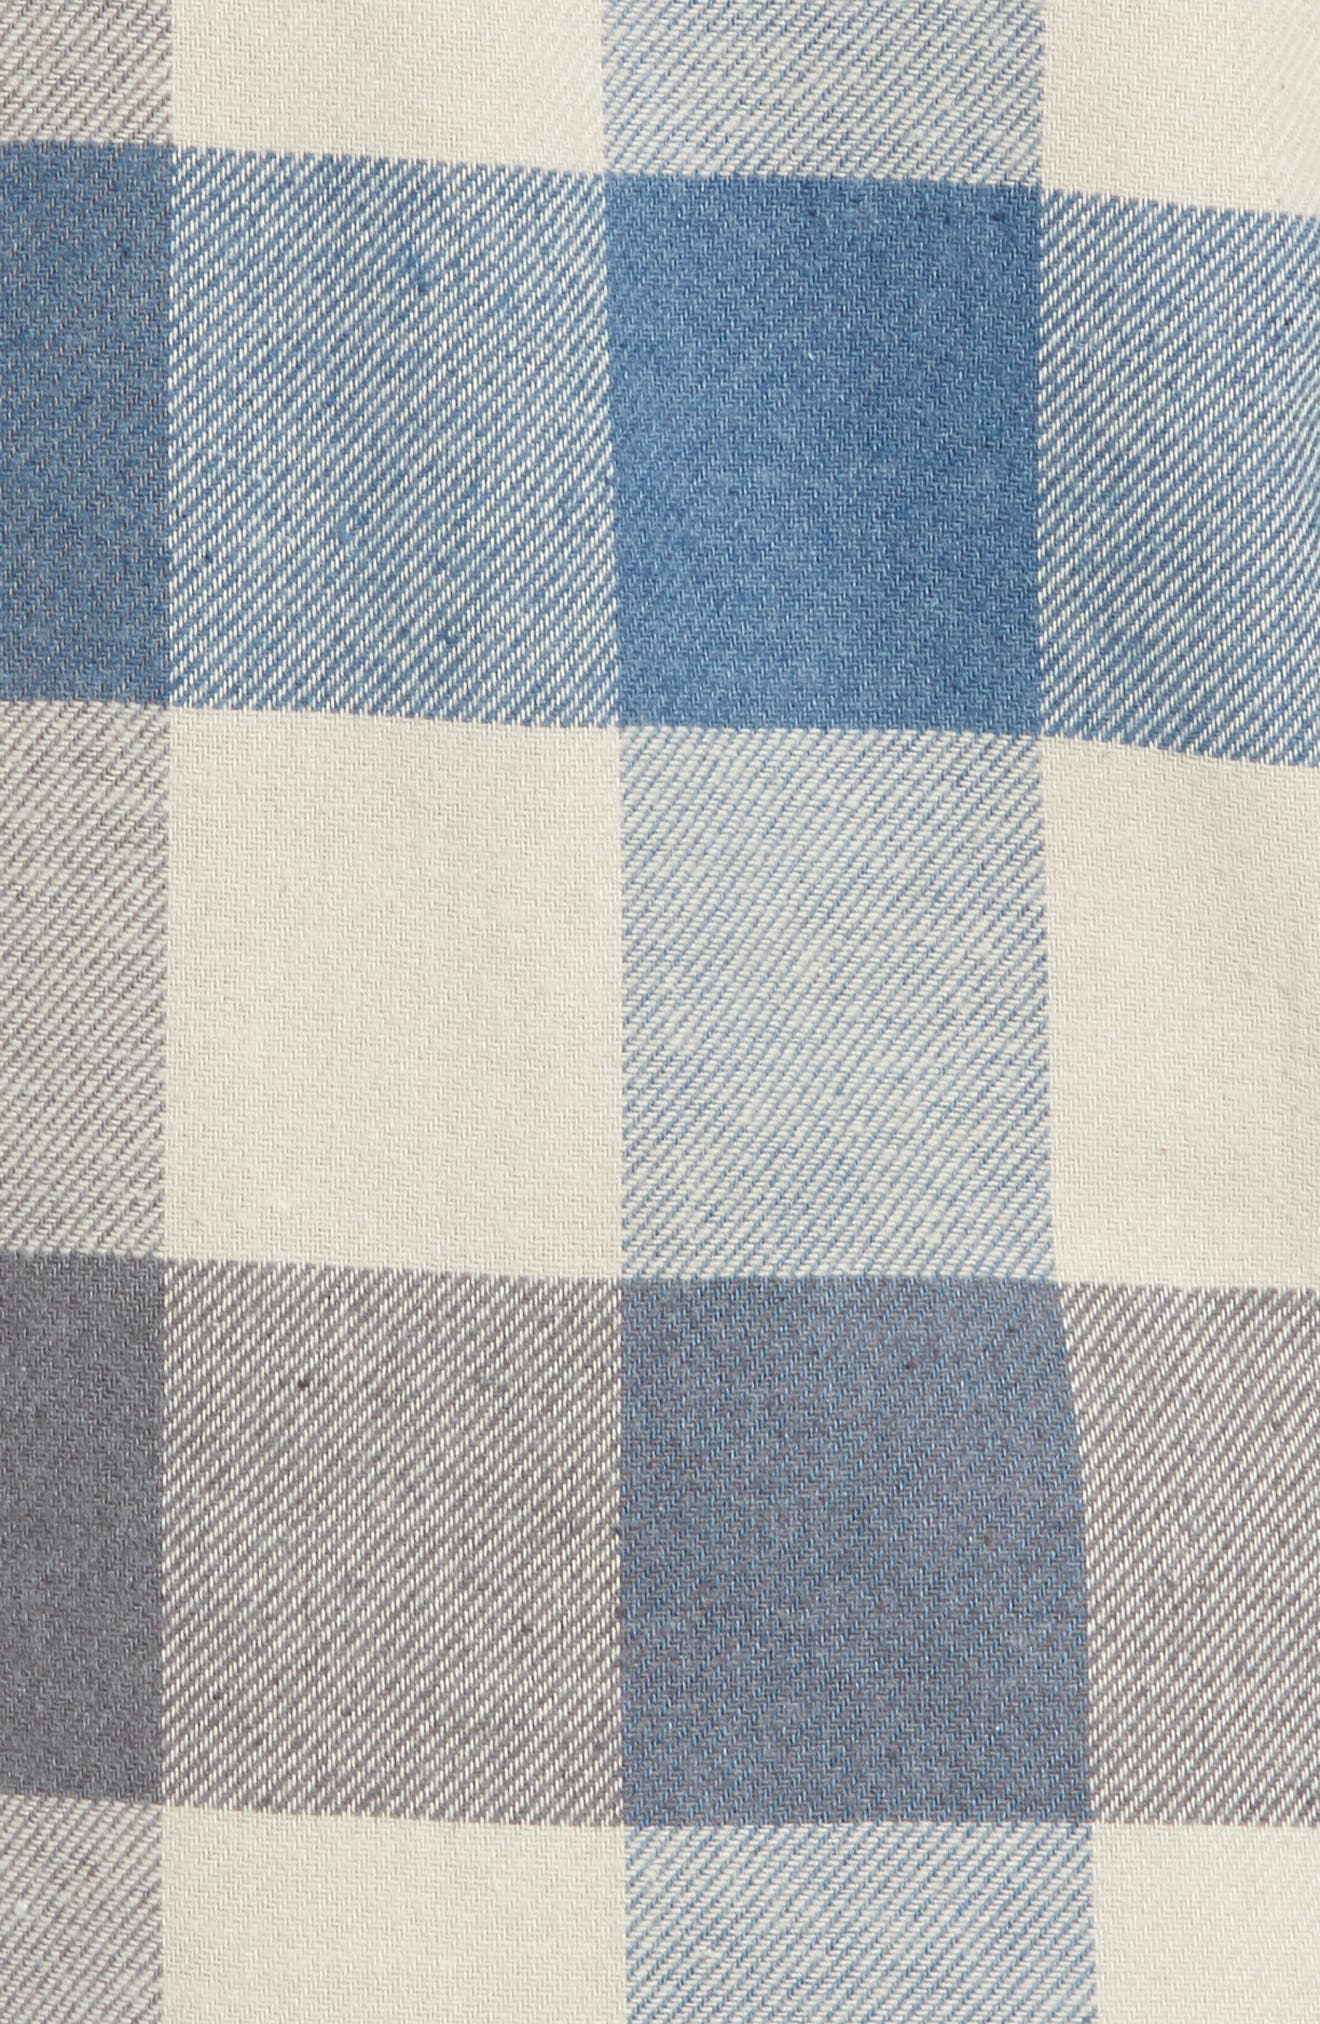 Bowery Flannel Shirt,                             Alternate thumbnail 48, color,